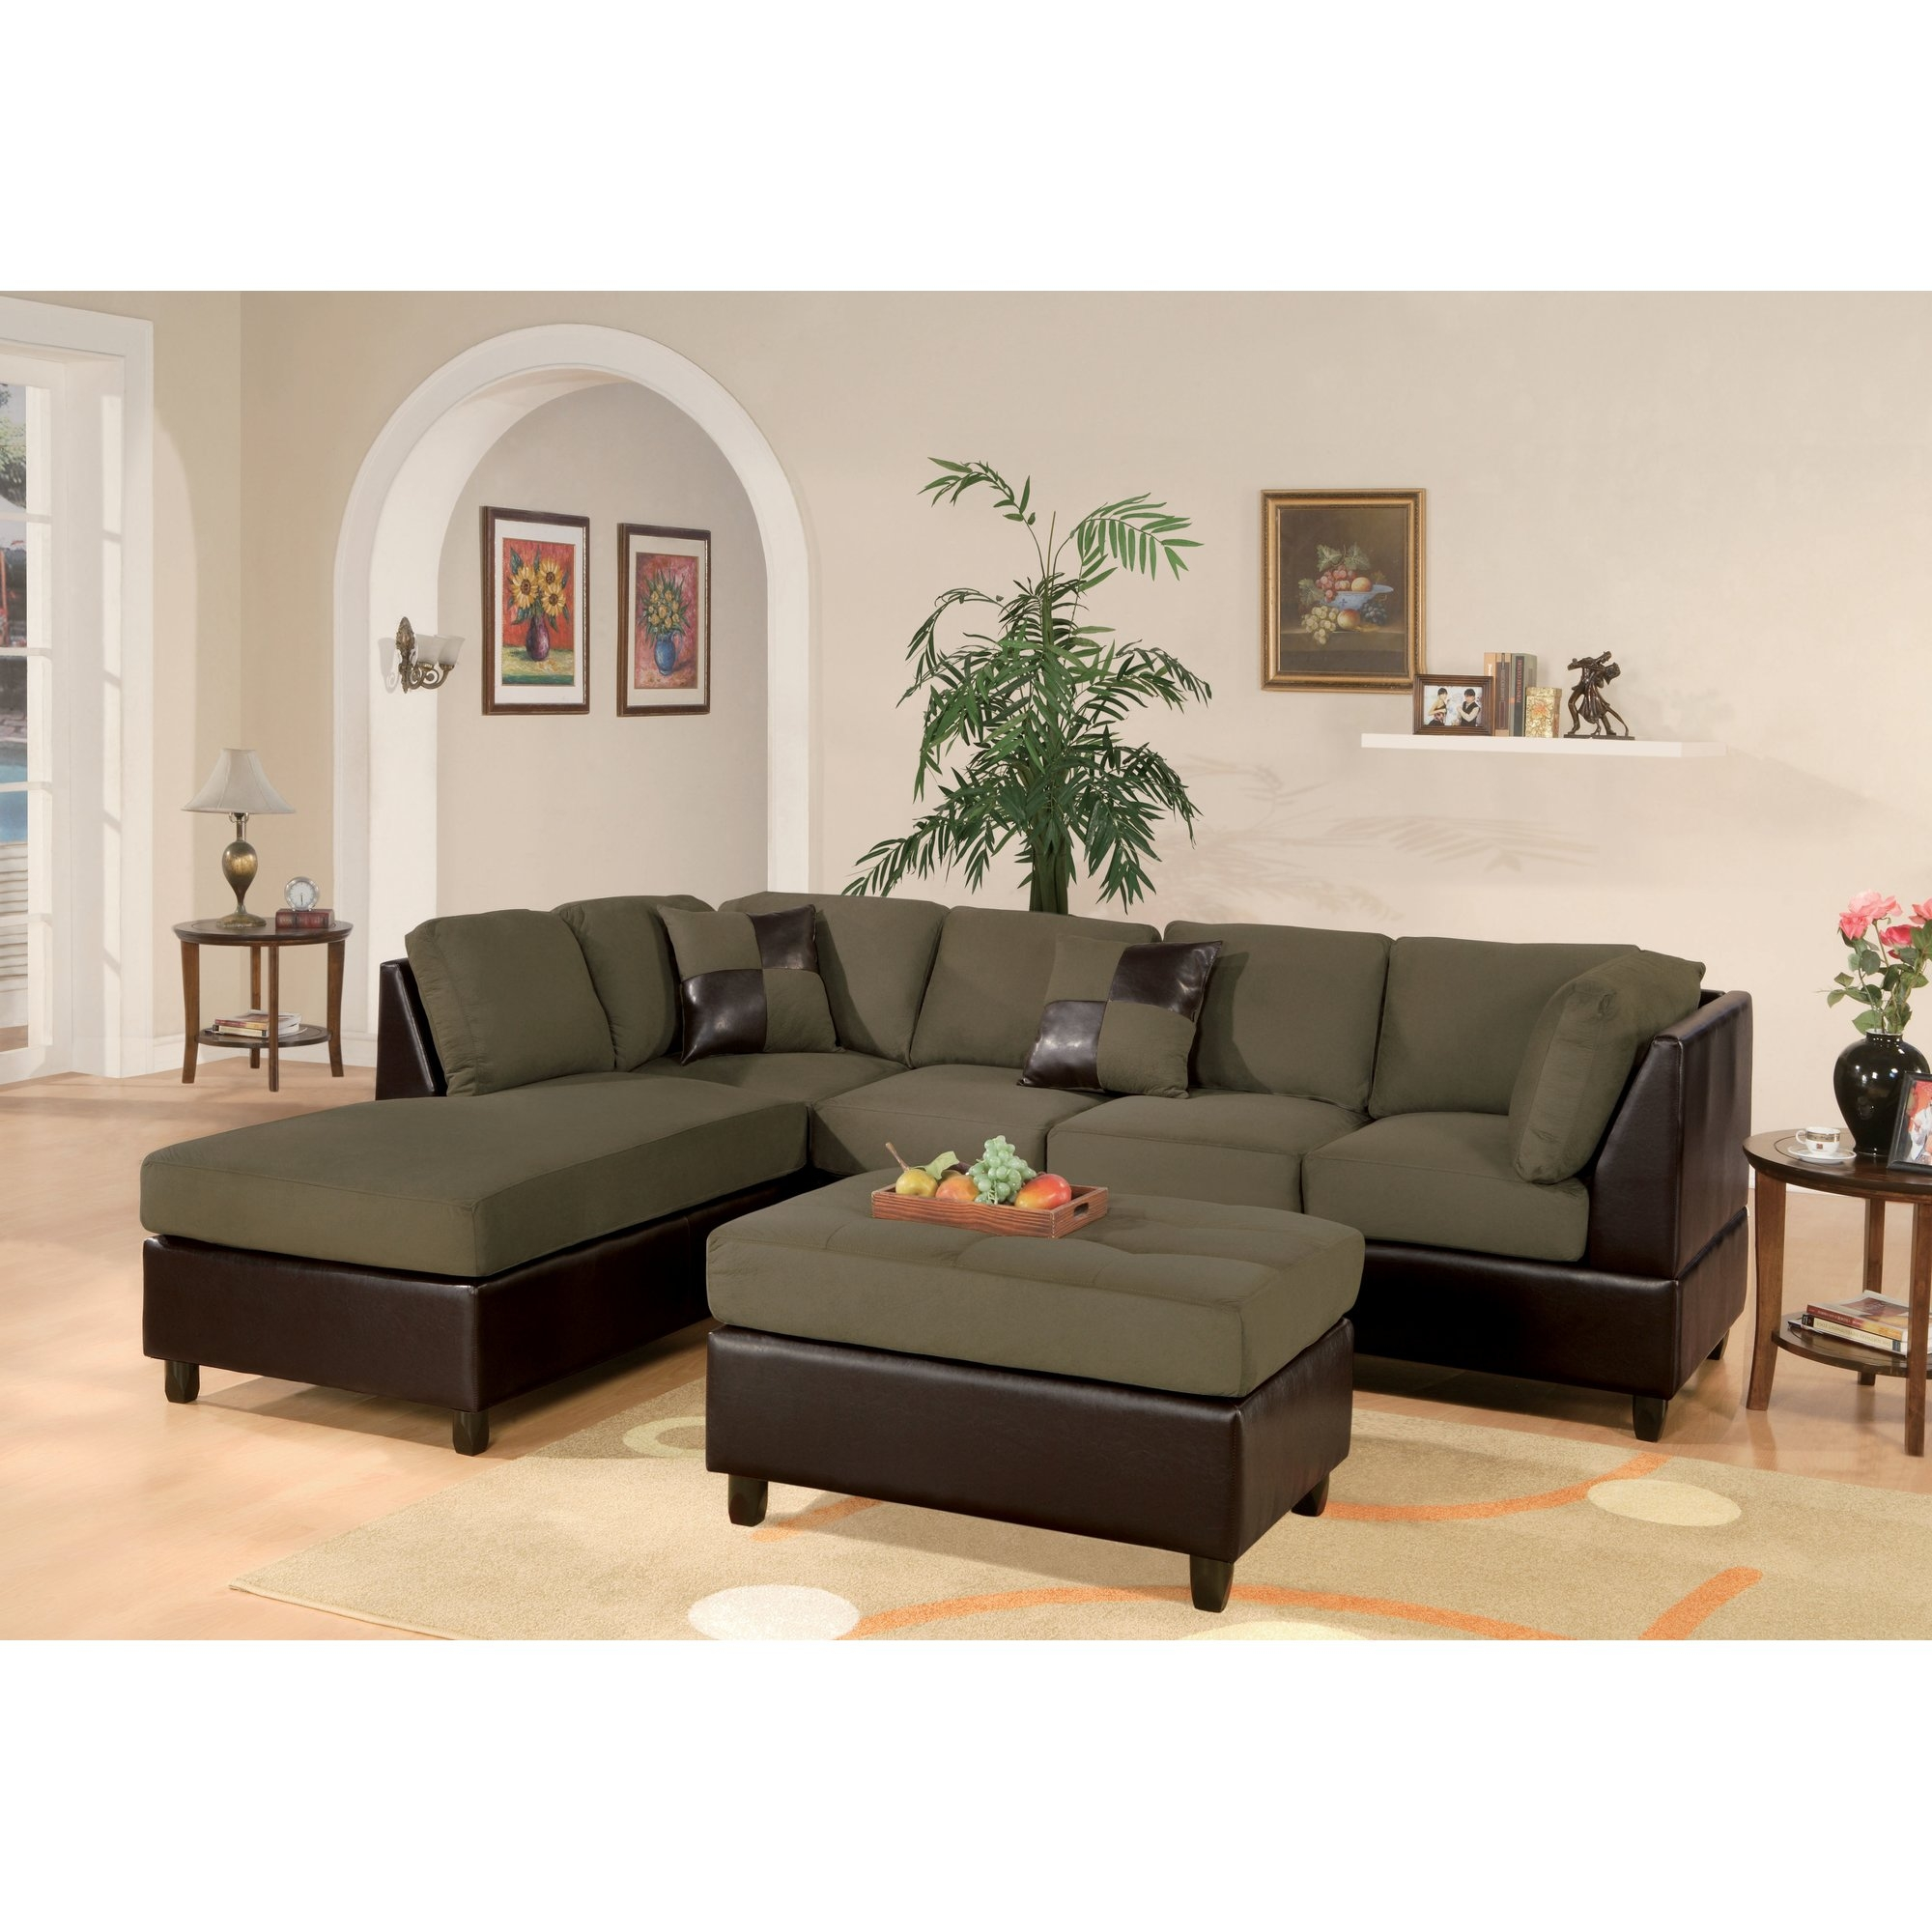 Faux Leather Sectional Sofas Youll Love Wayfair Regarding Contemporary Black Leather Sectional Sofa Left Side Chaise (Image 12 of 15)